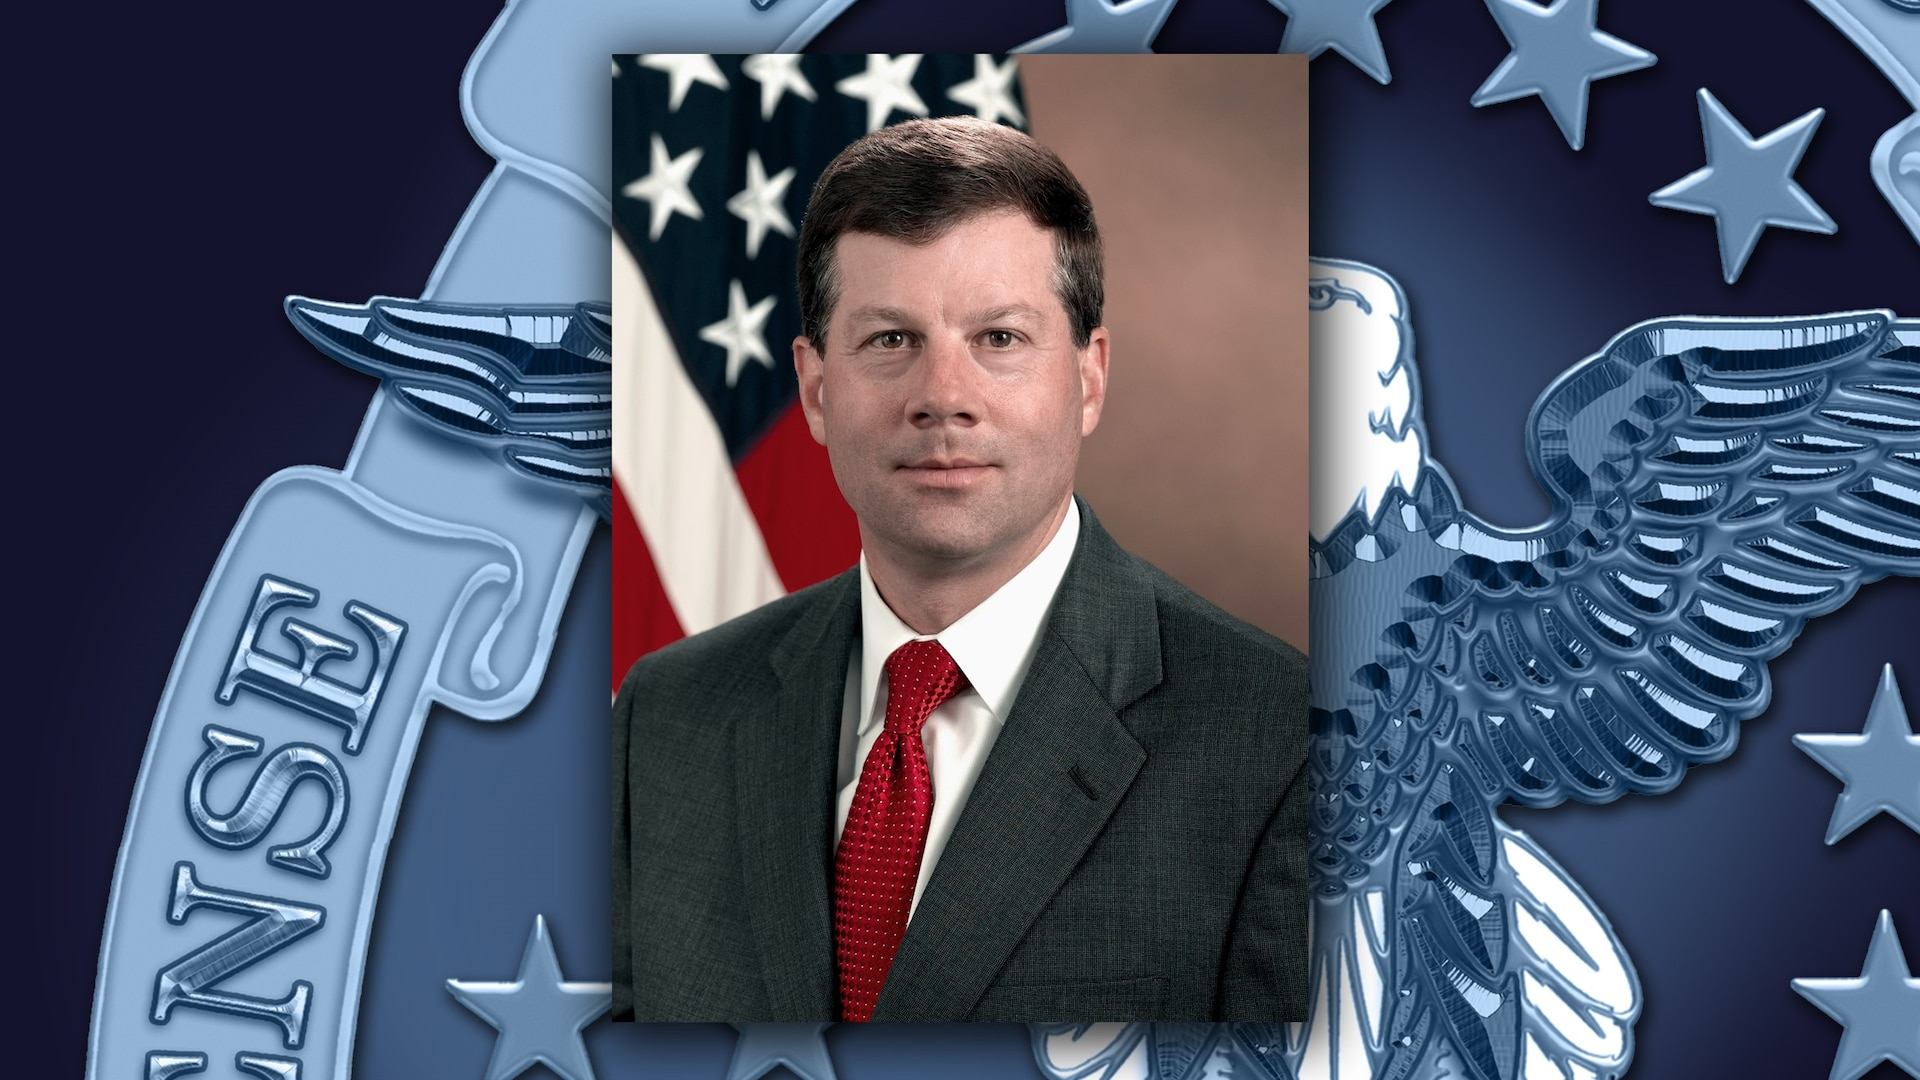 White man in a black suit and red tie sits in front of the US flag.